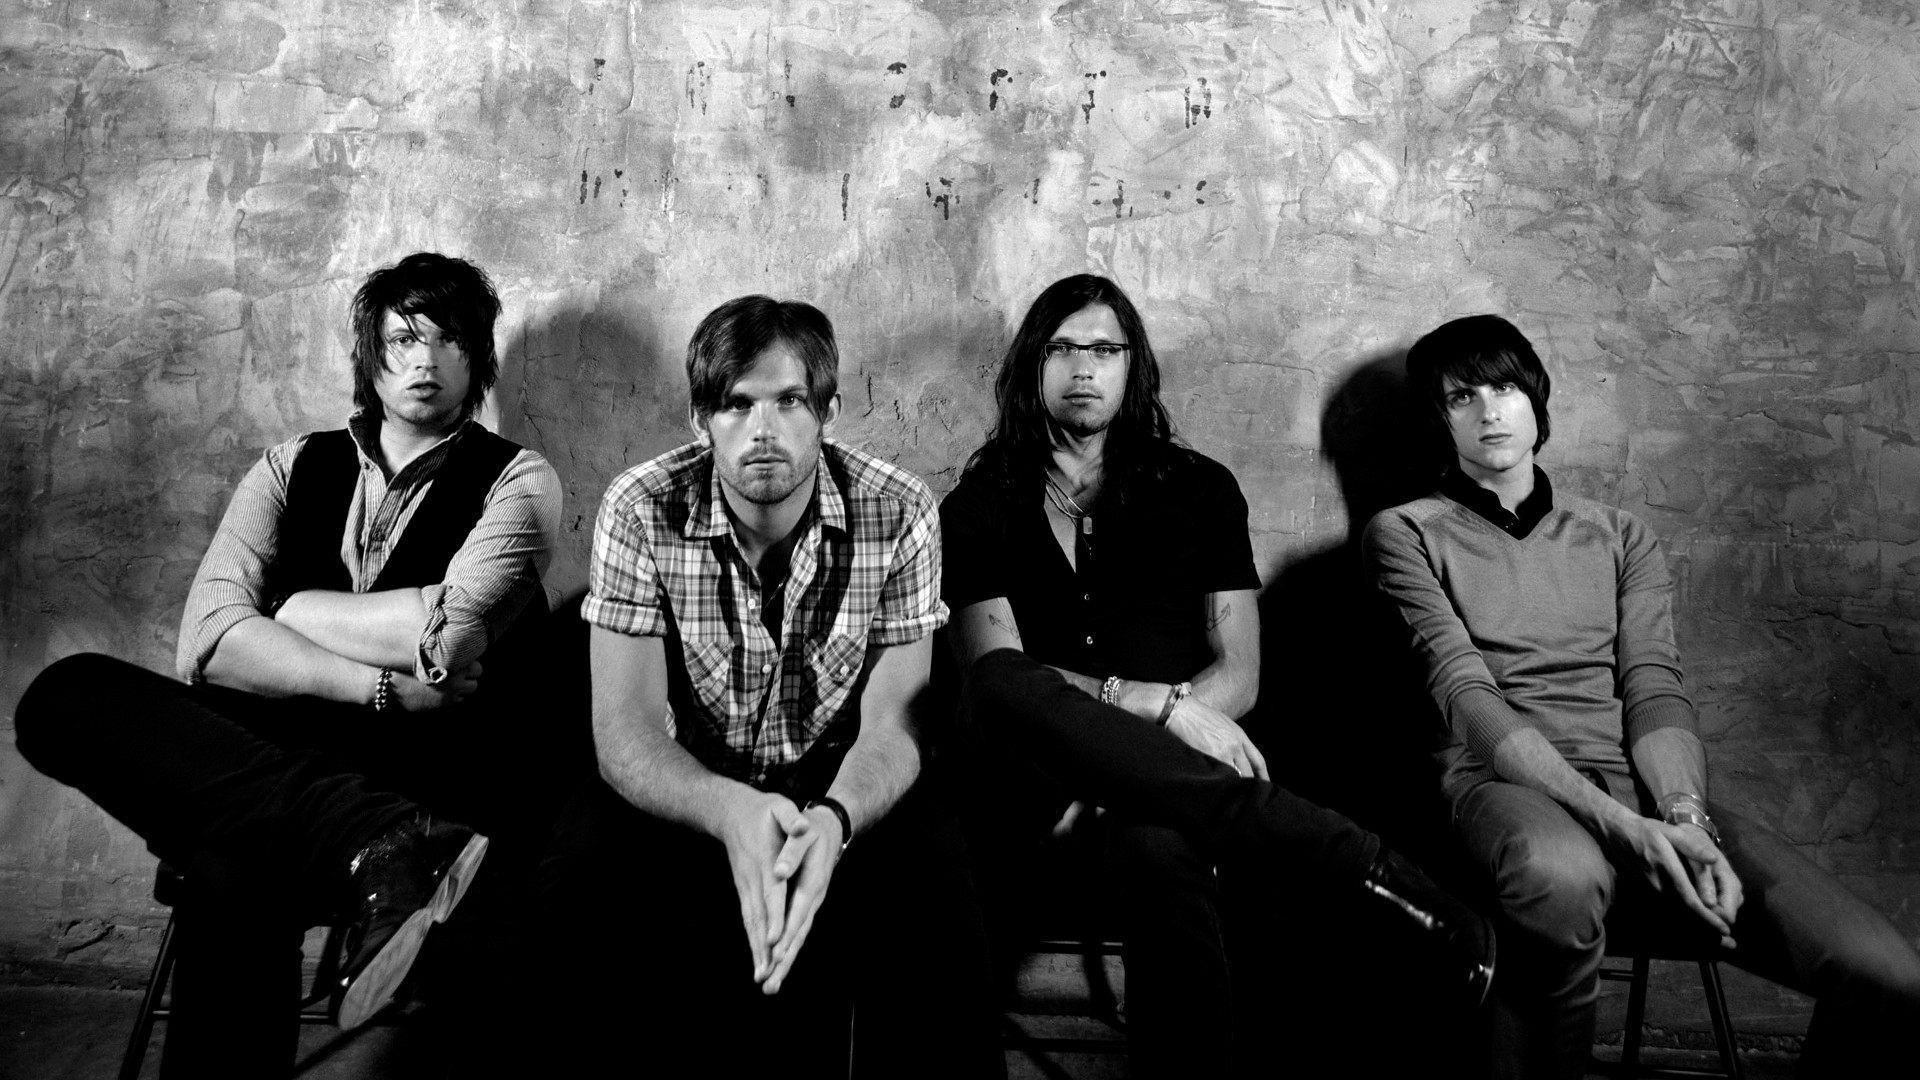 kings of leon band wallpaper 52682